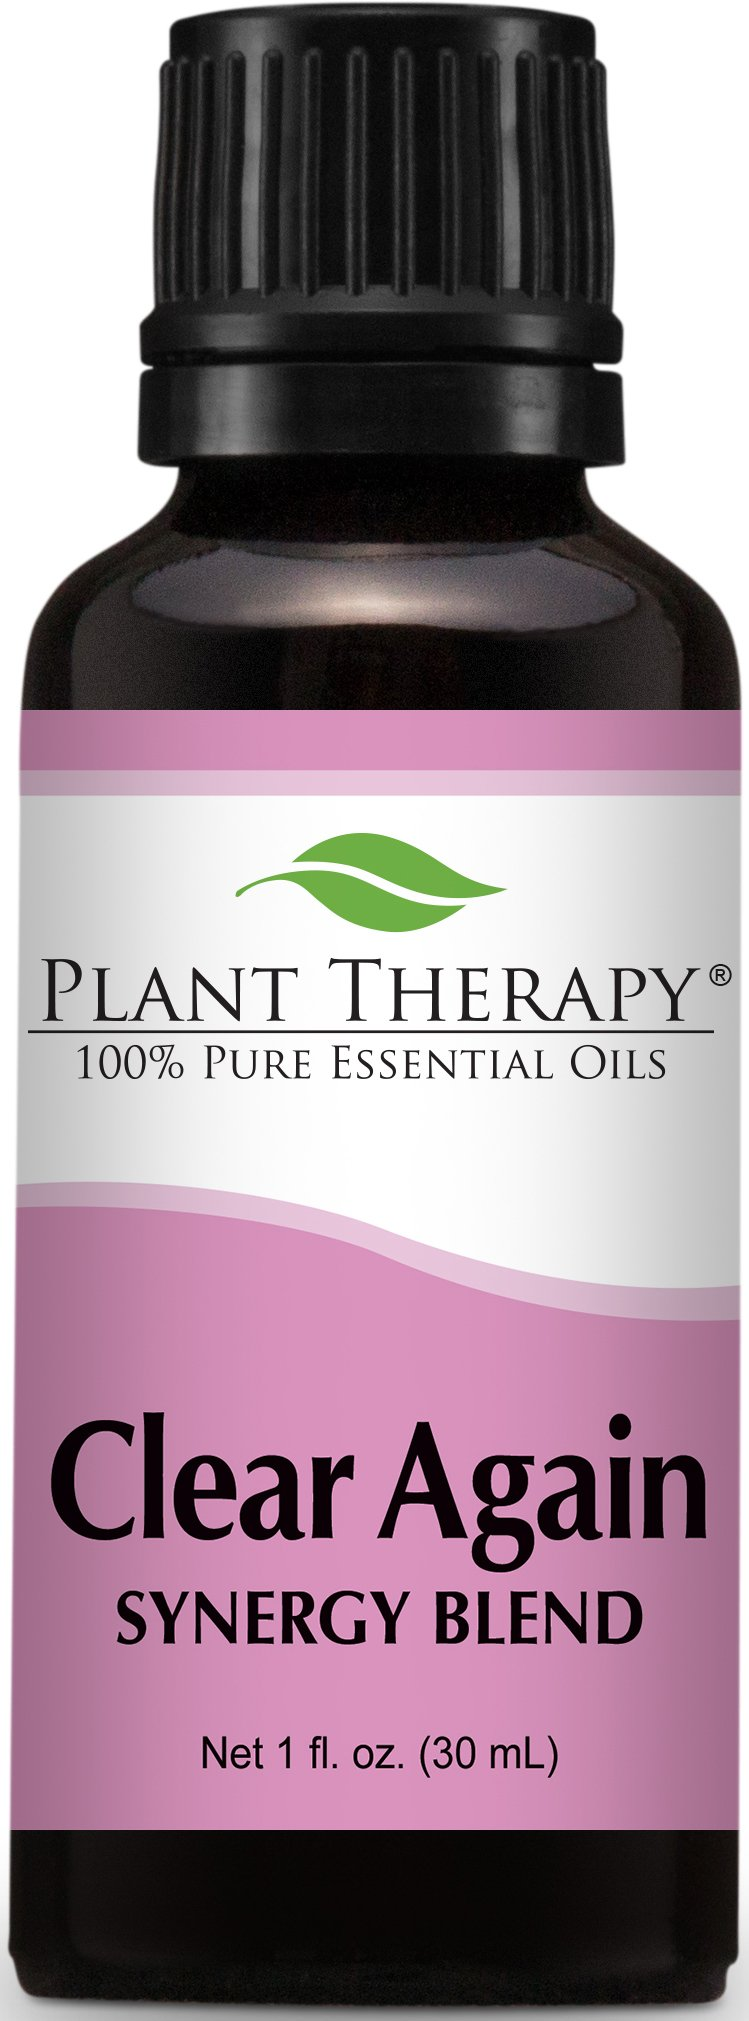 Plant Therapy Clear Again Synergy Essential Oil Blend 30 mL (1 oz) 100% Pure, Undiluted, Therapeutic Grade by Plant Therapy